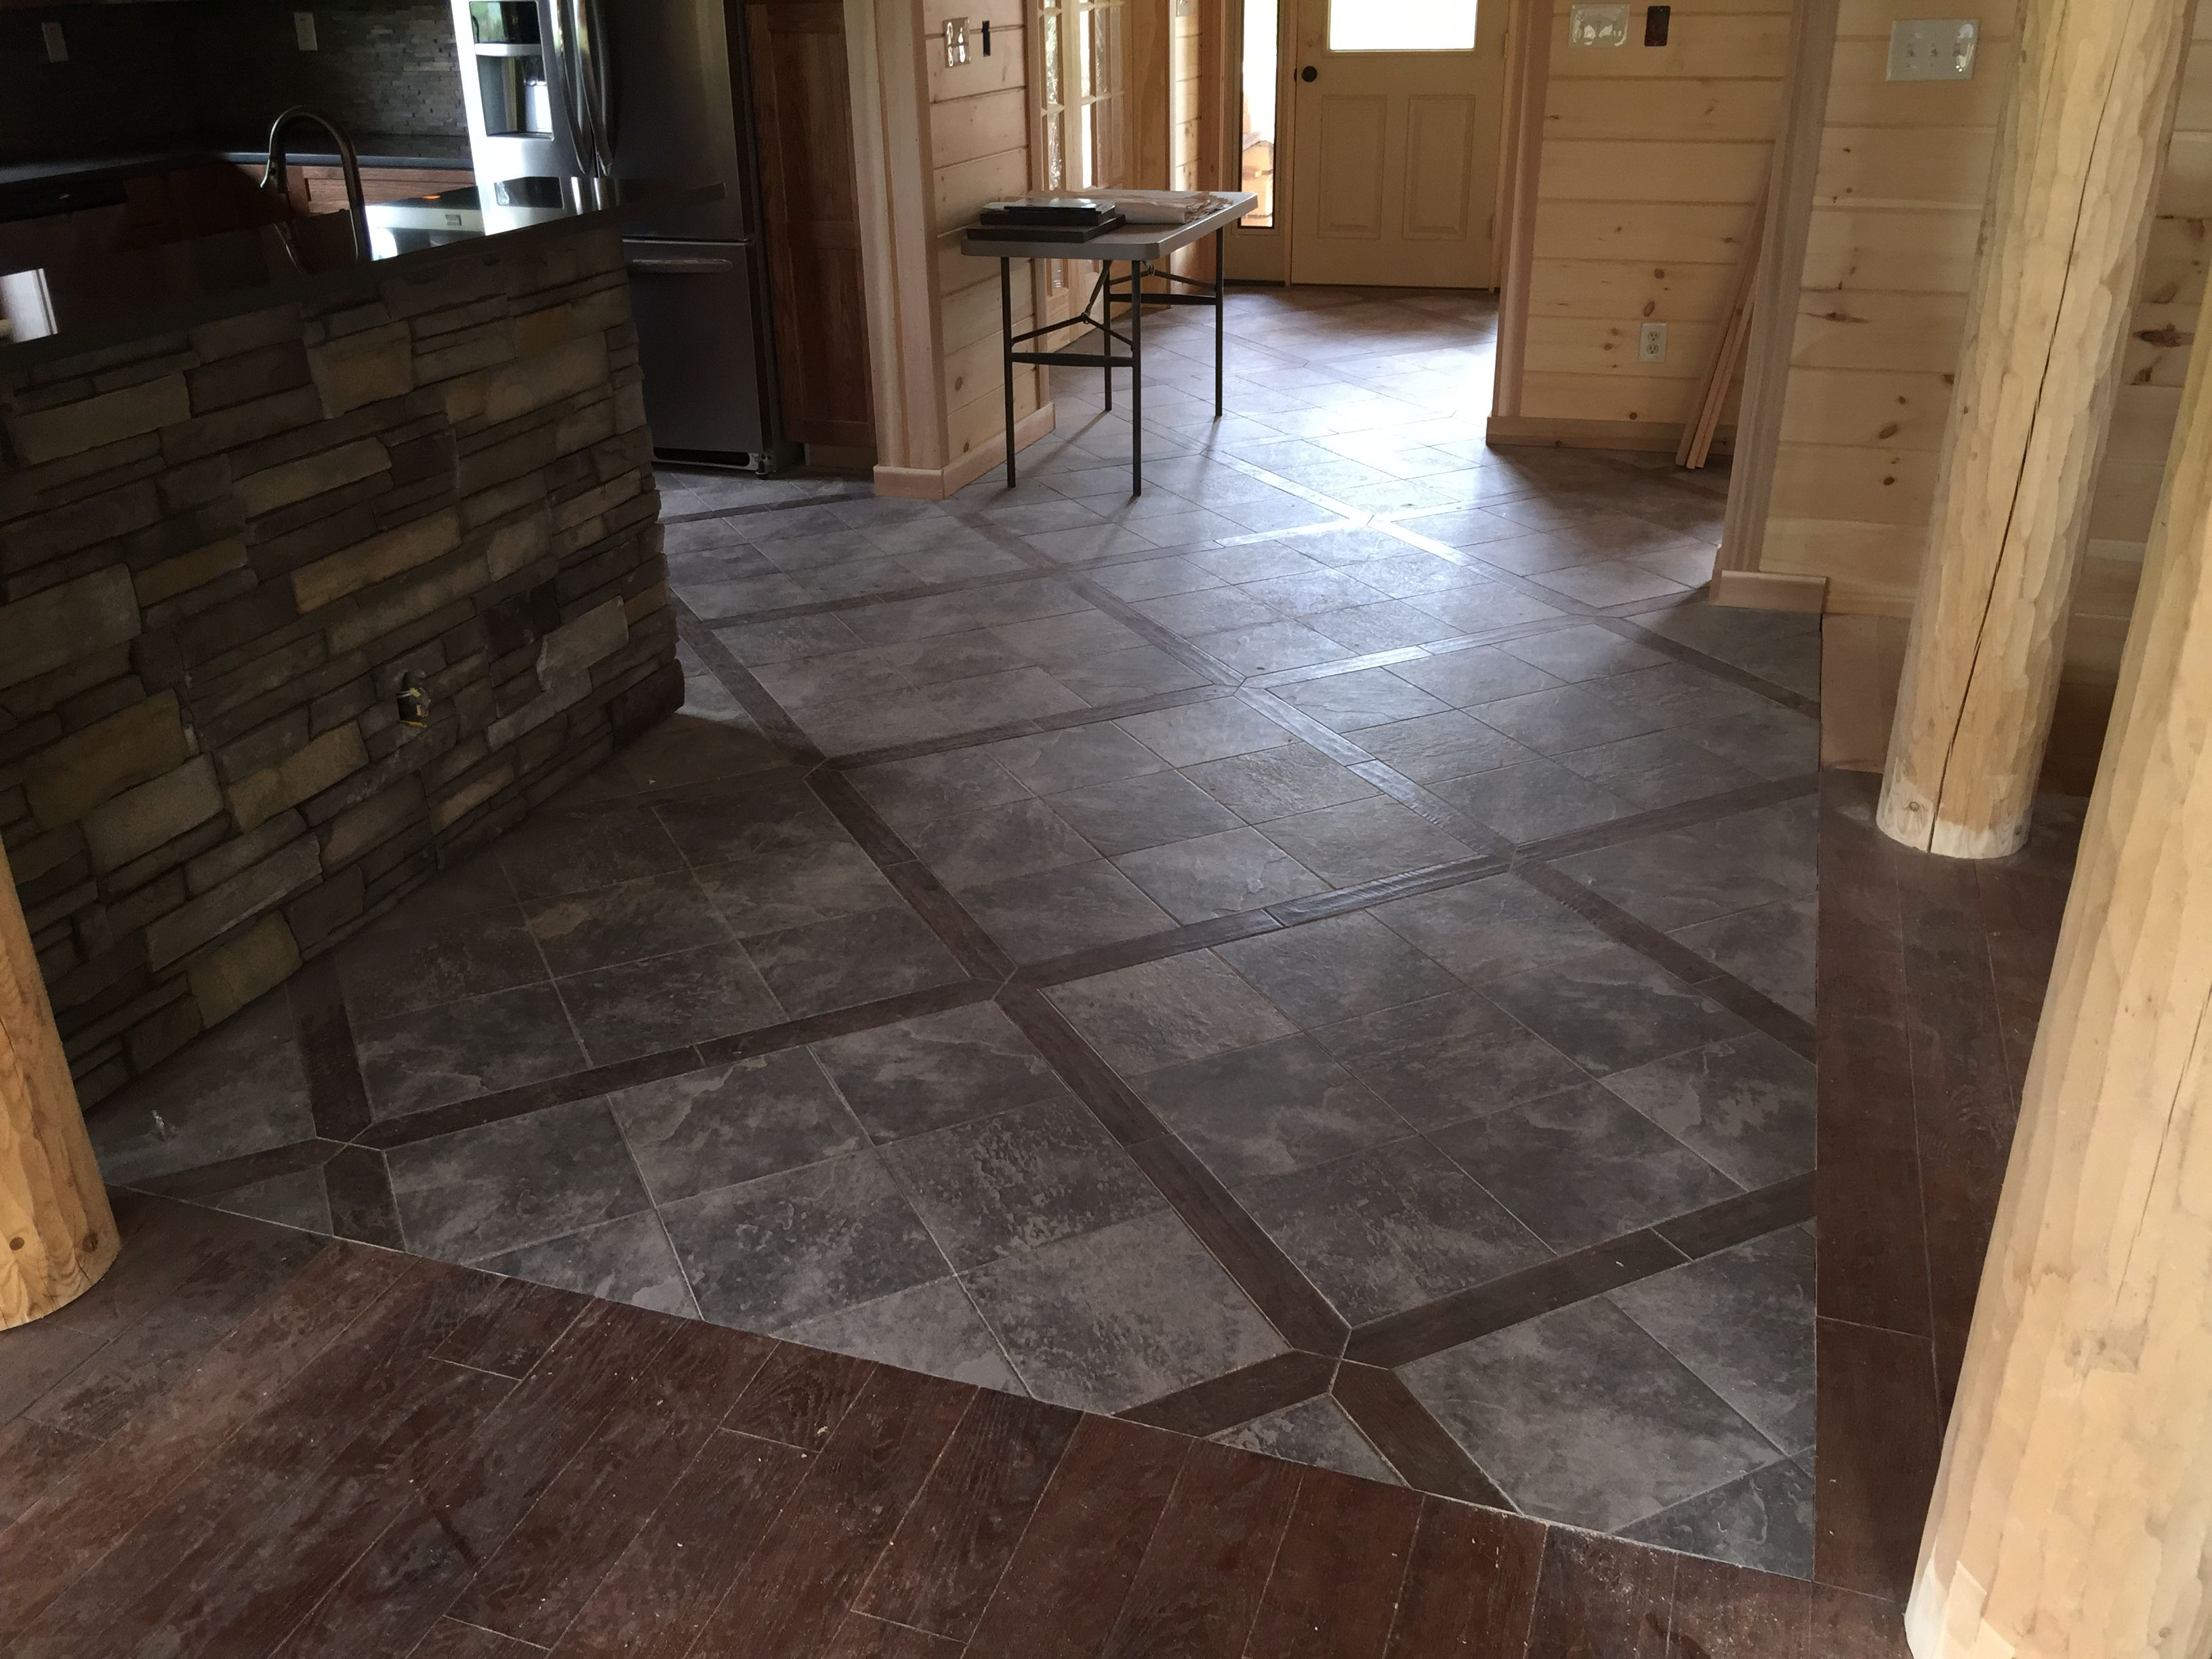 3 4 Inch Wideplank Oak Hardwood Floors With A Faux Slate Porcelain Tile Throughout The Log Home Adds To Endurance Of Longevity This